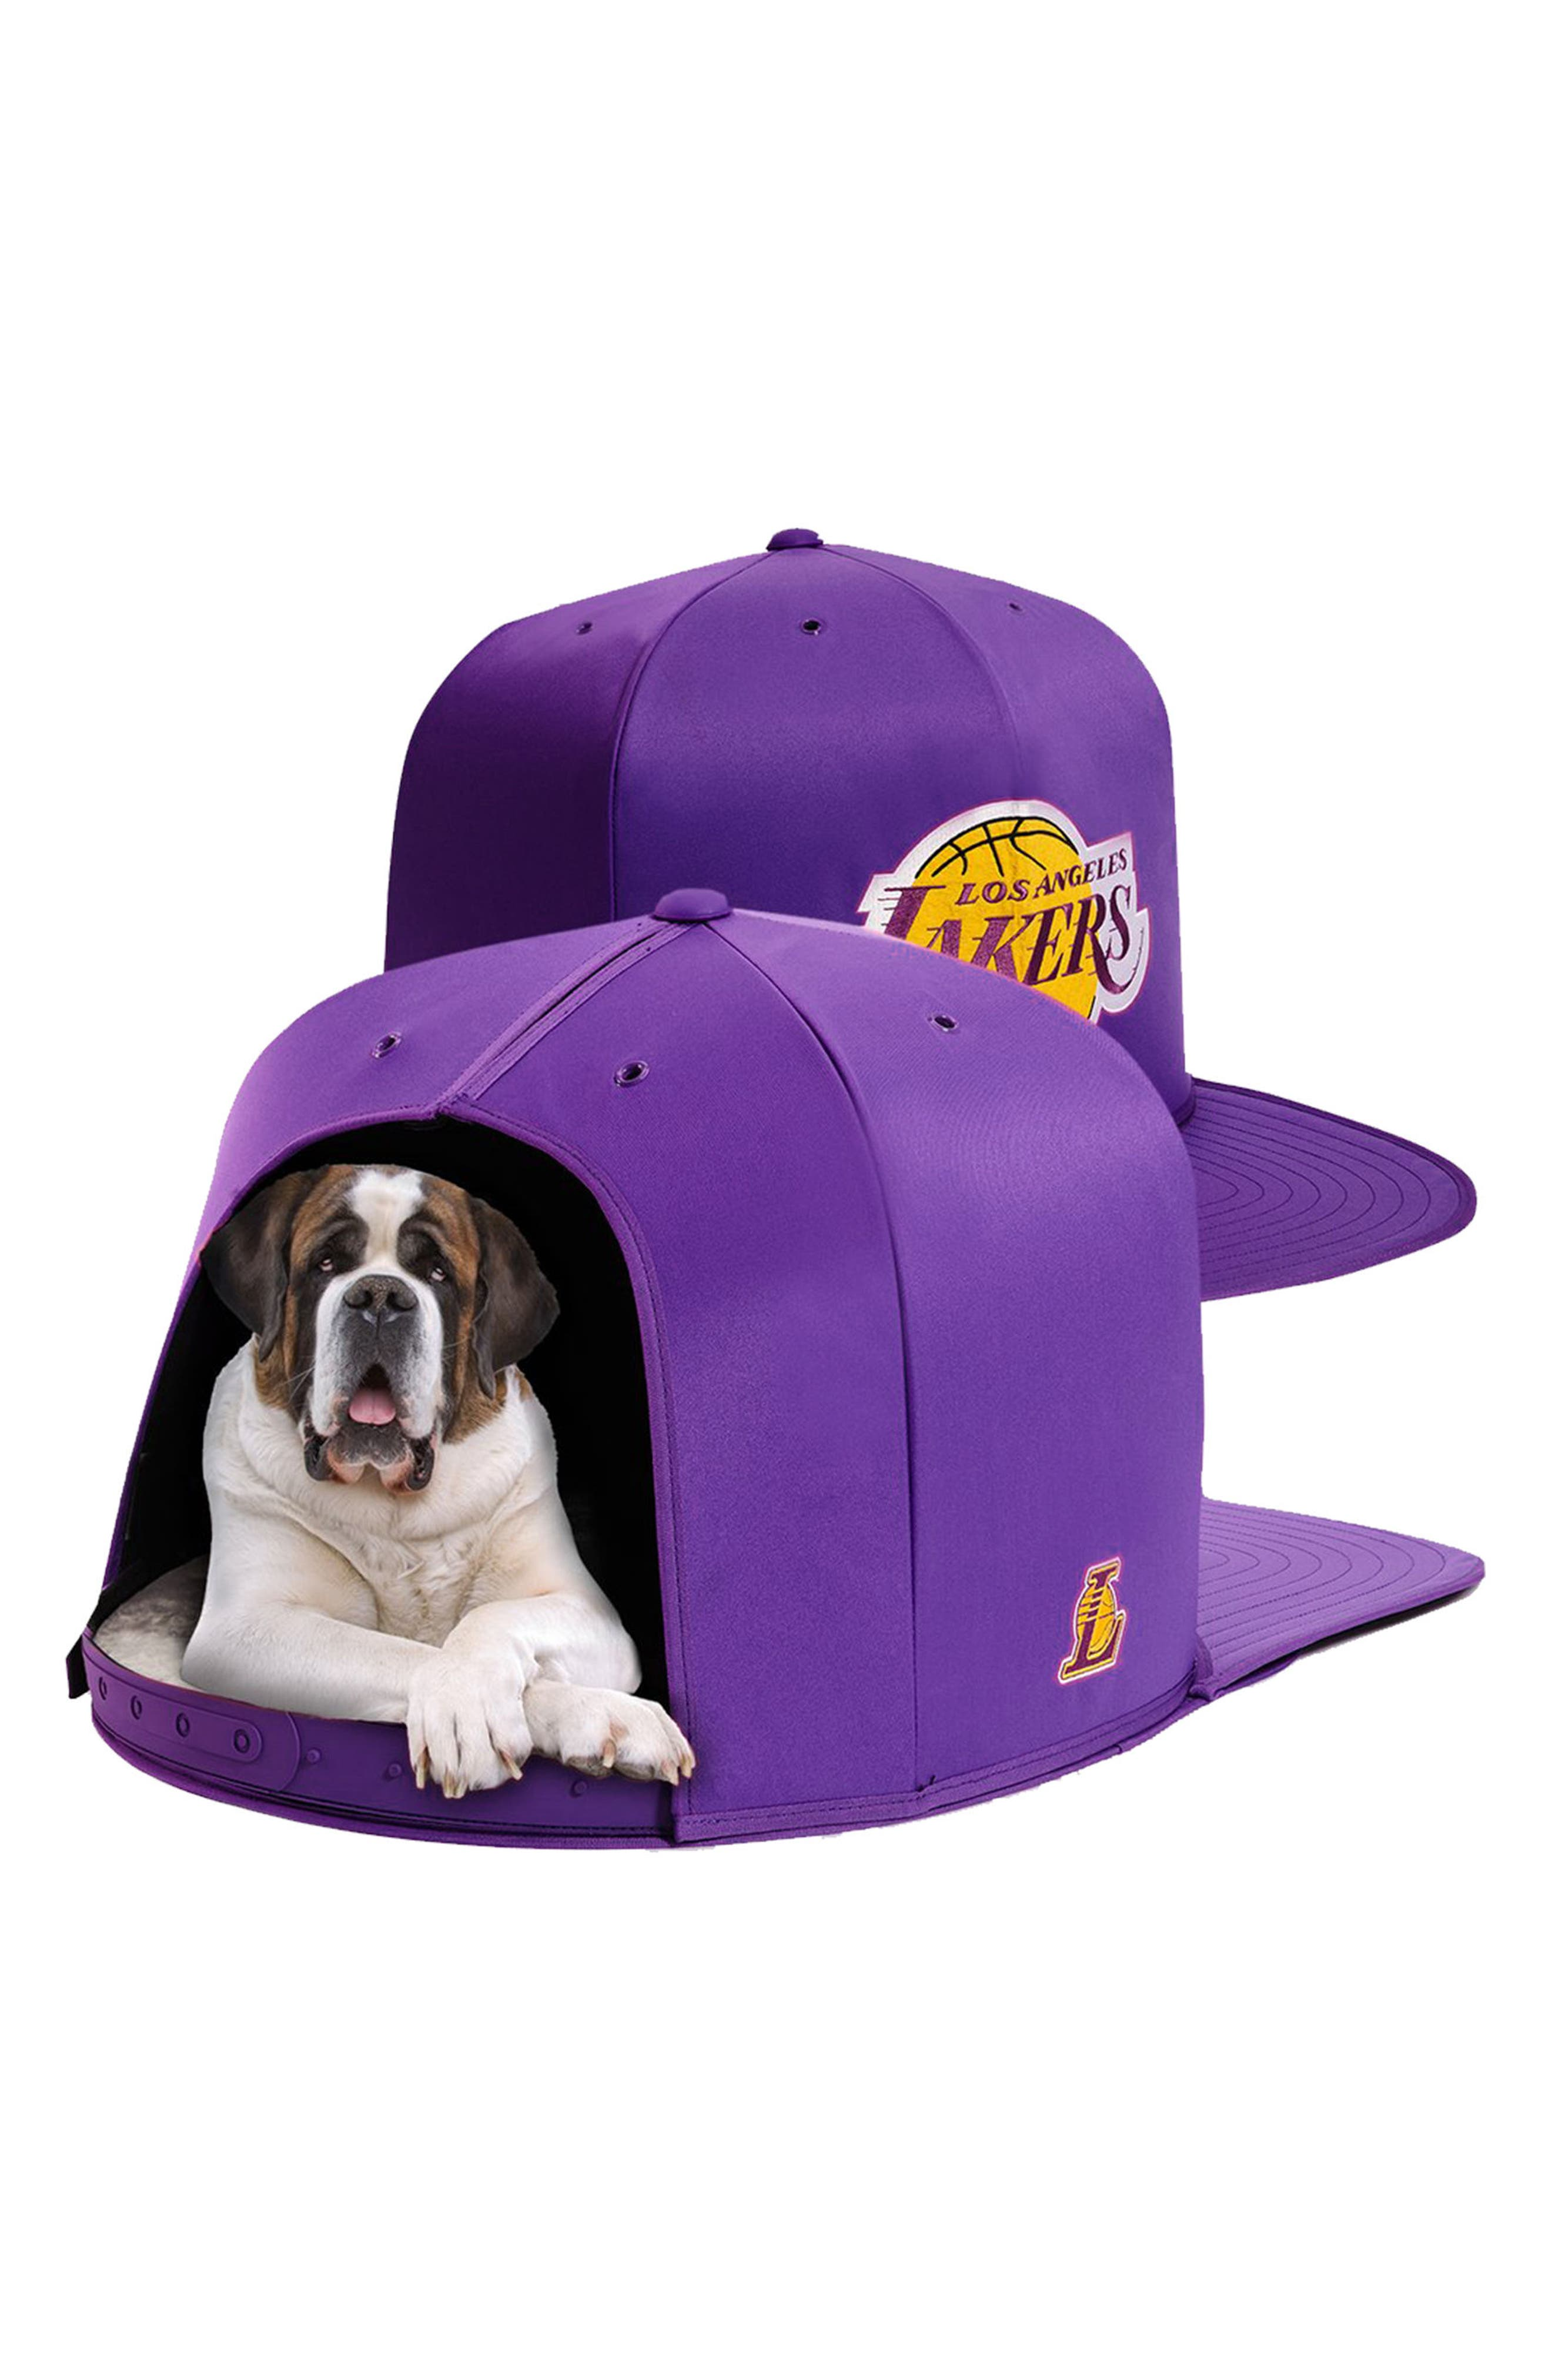 Los Angeles Lakers Pet Bed,                             Alternate thumbnail 3, color,                             500